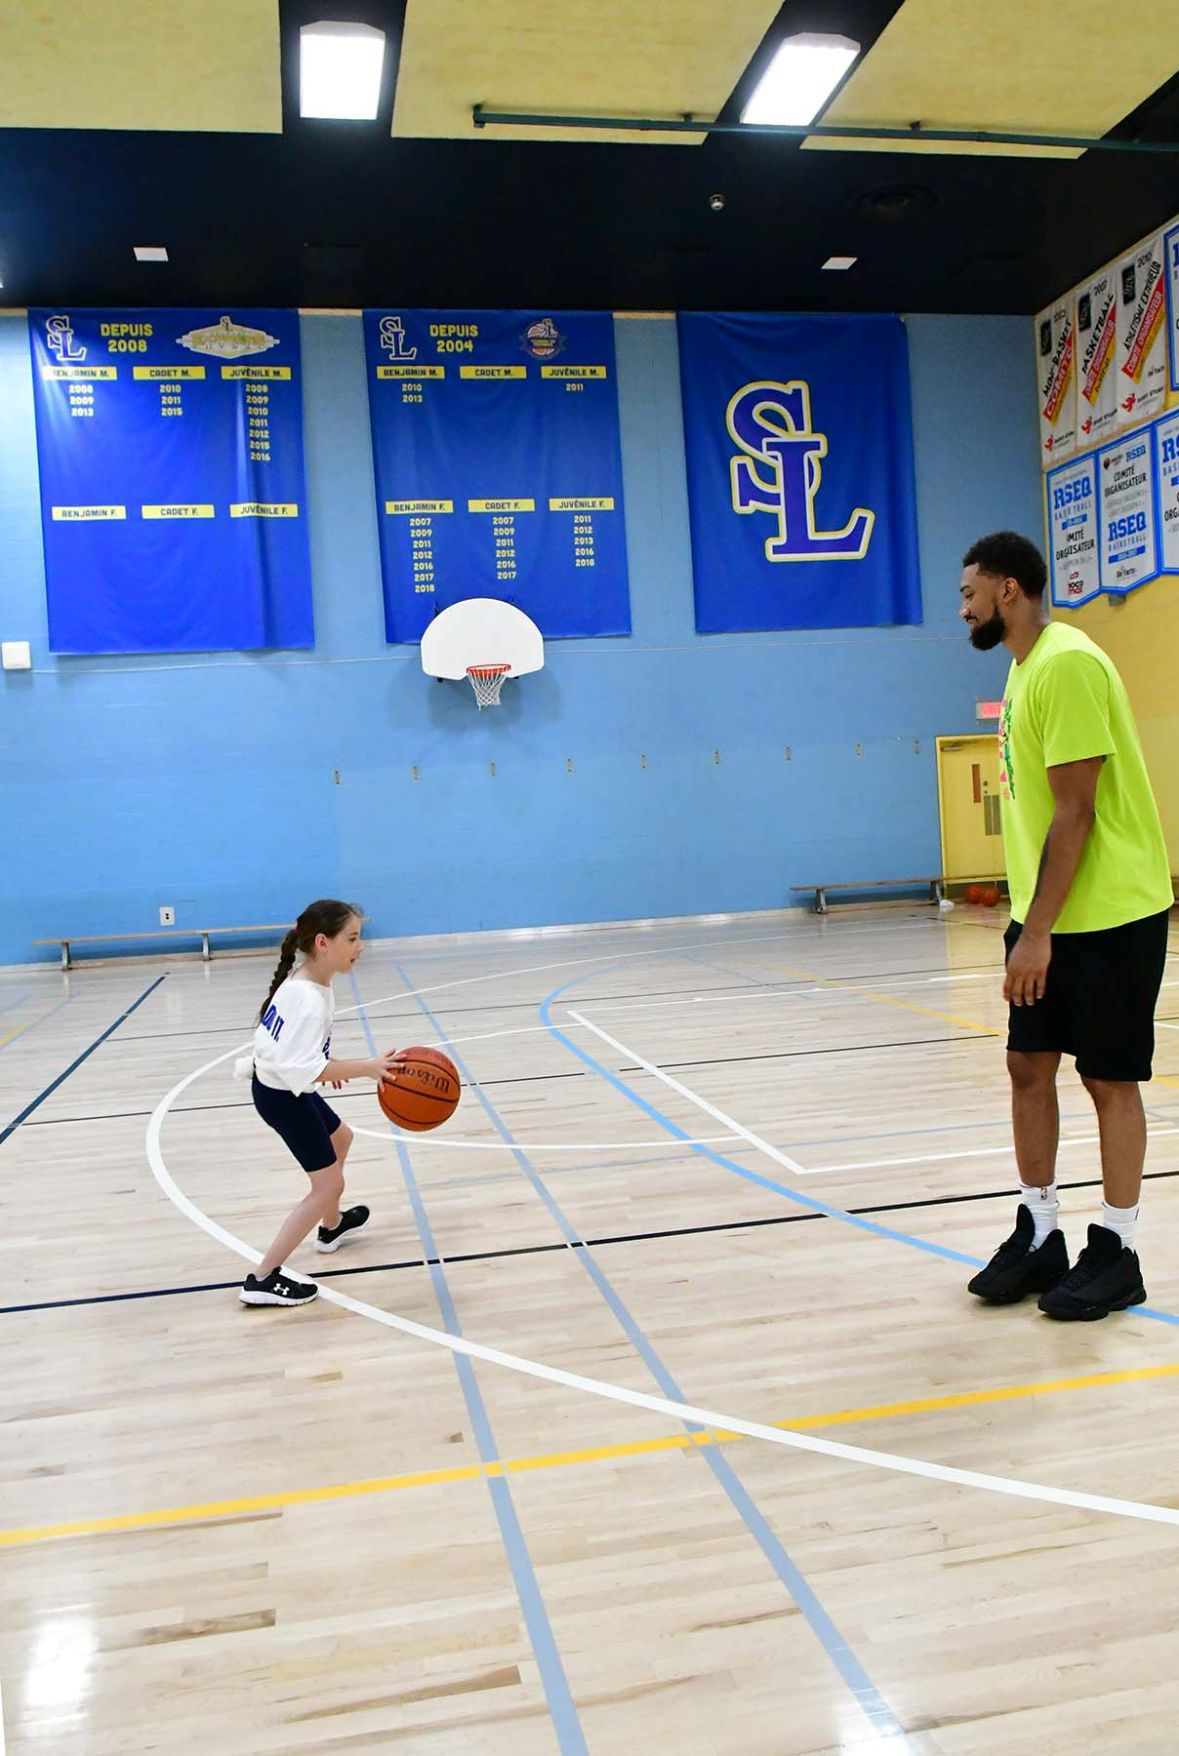 A Magic Khem-istry class for local youth basketballers